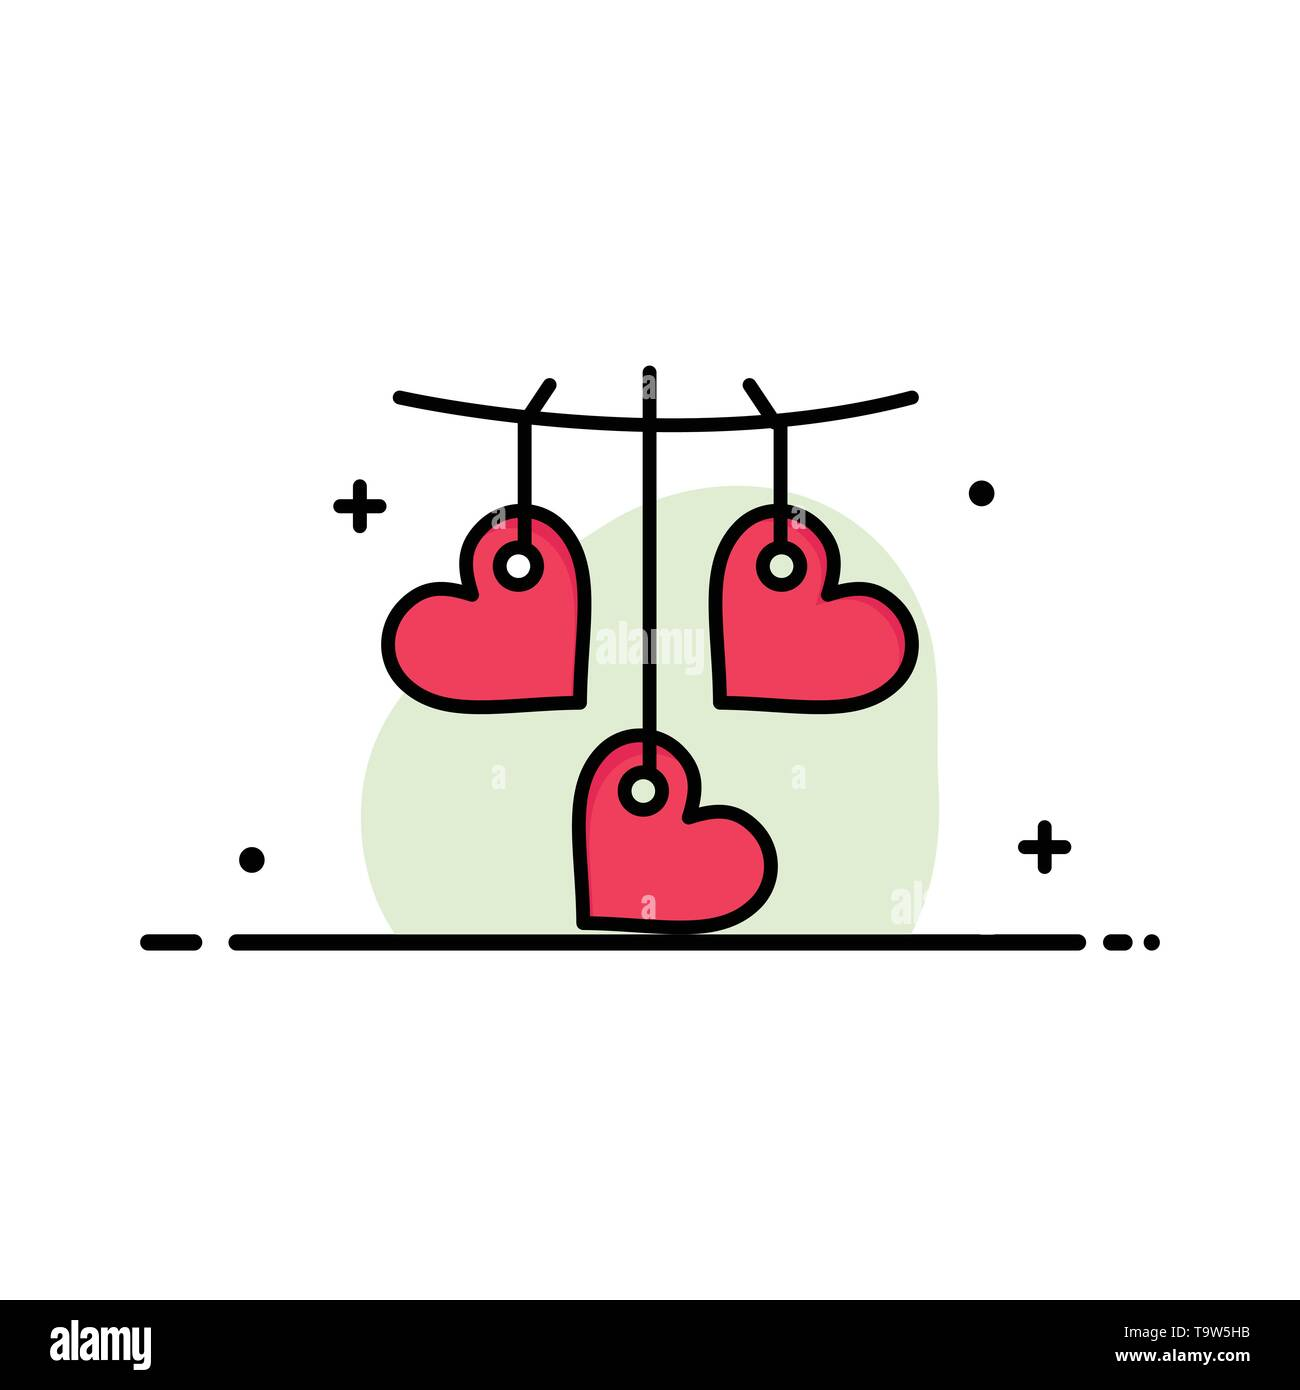 Heart, Valentine, Love, Hanging  Business Flat Line Filled Icon Vector Banner Template - Stock Image